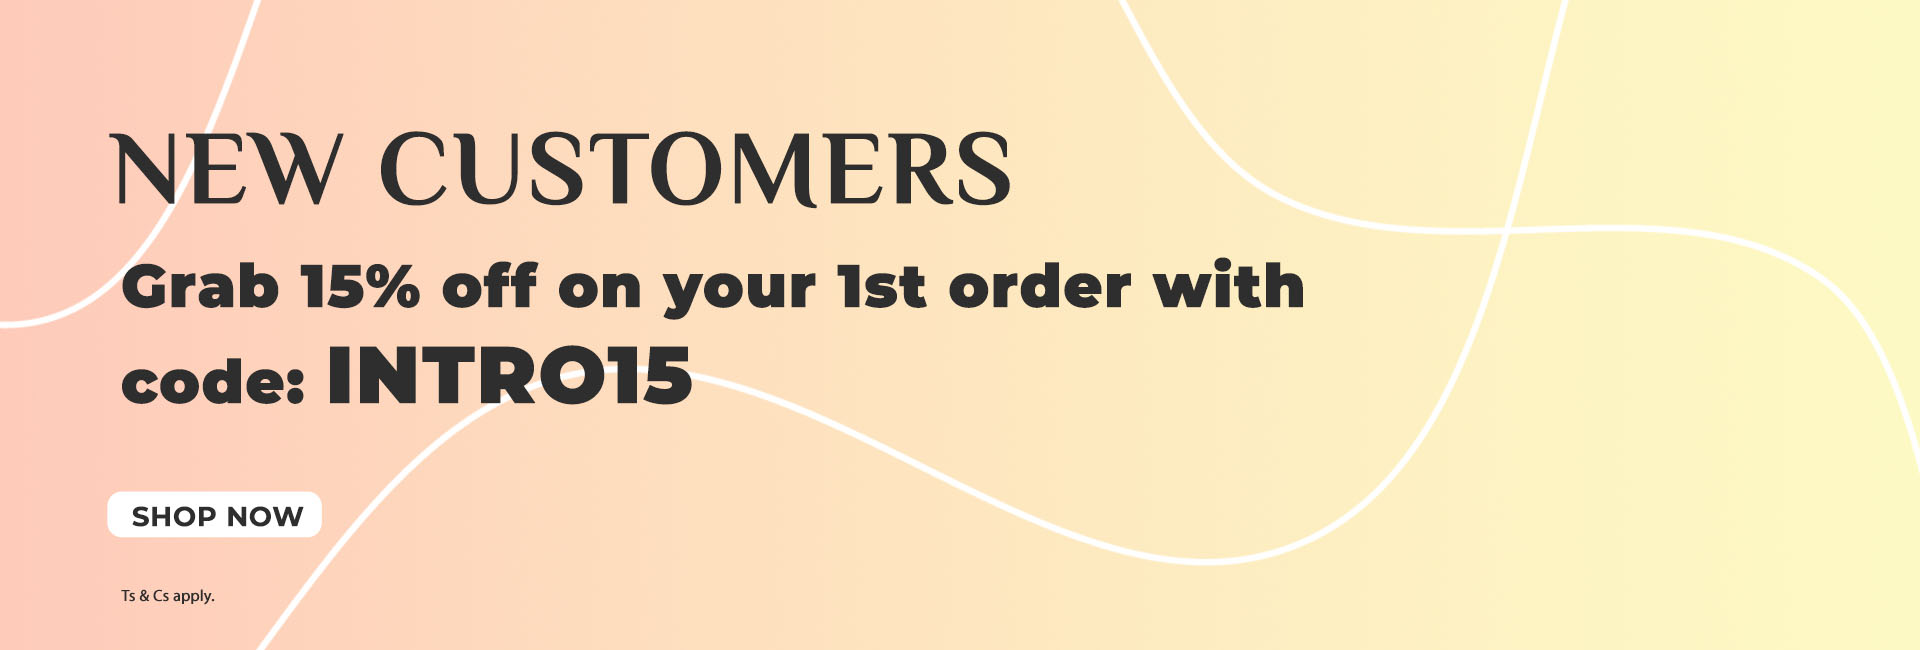 15% off for new customers